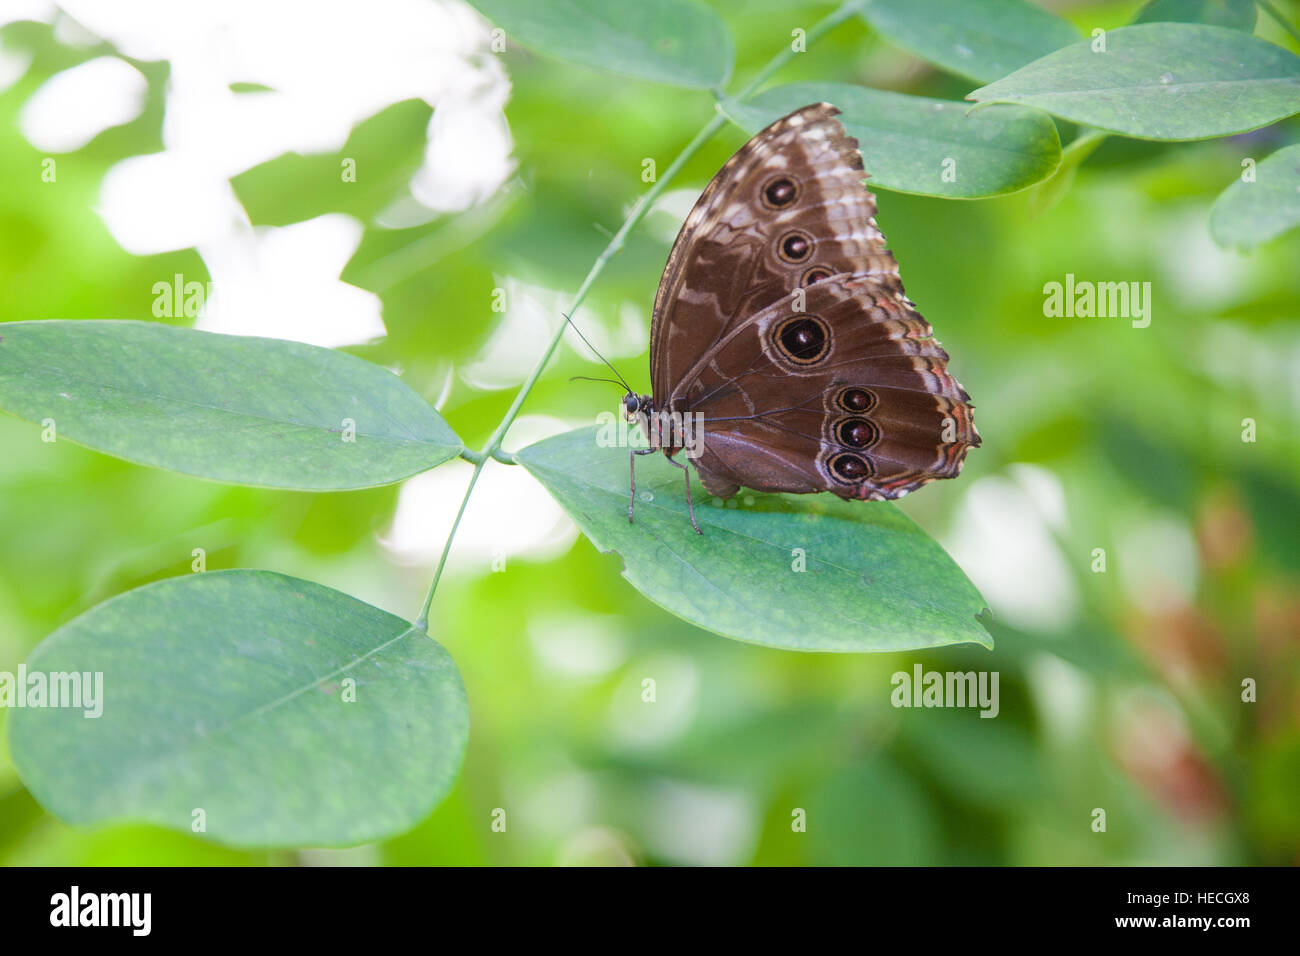 beautiful tropical brown with black circles iridescent butterfly named Morpho peleides, from Nymphalidae family, Stock Photo